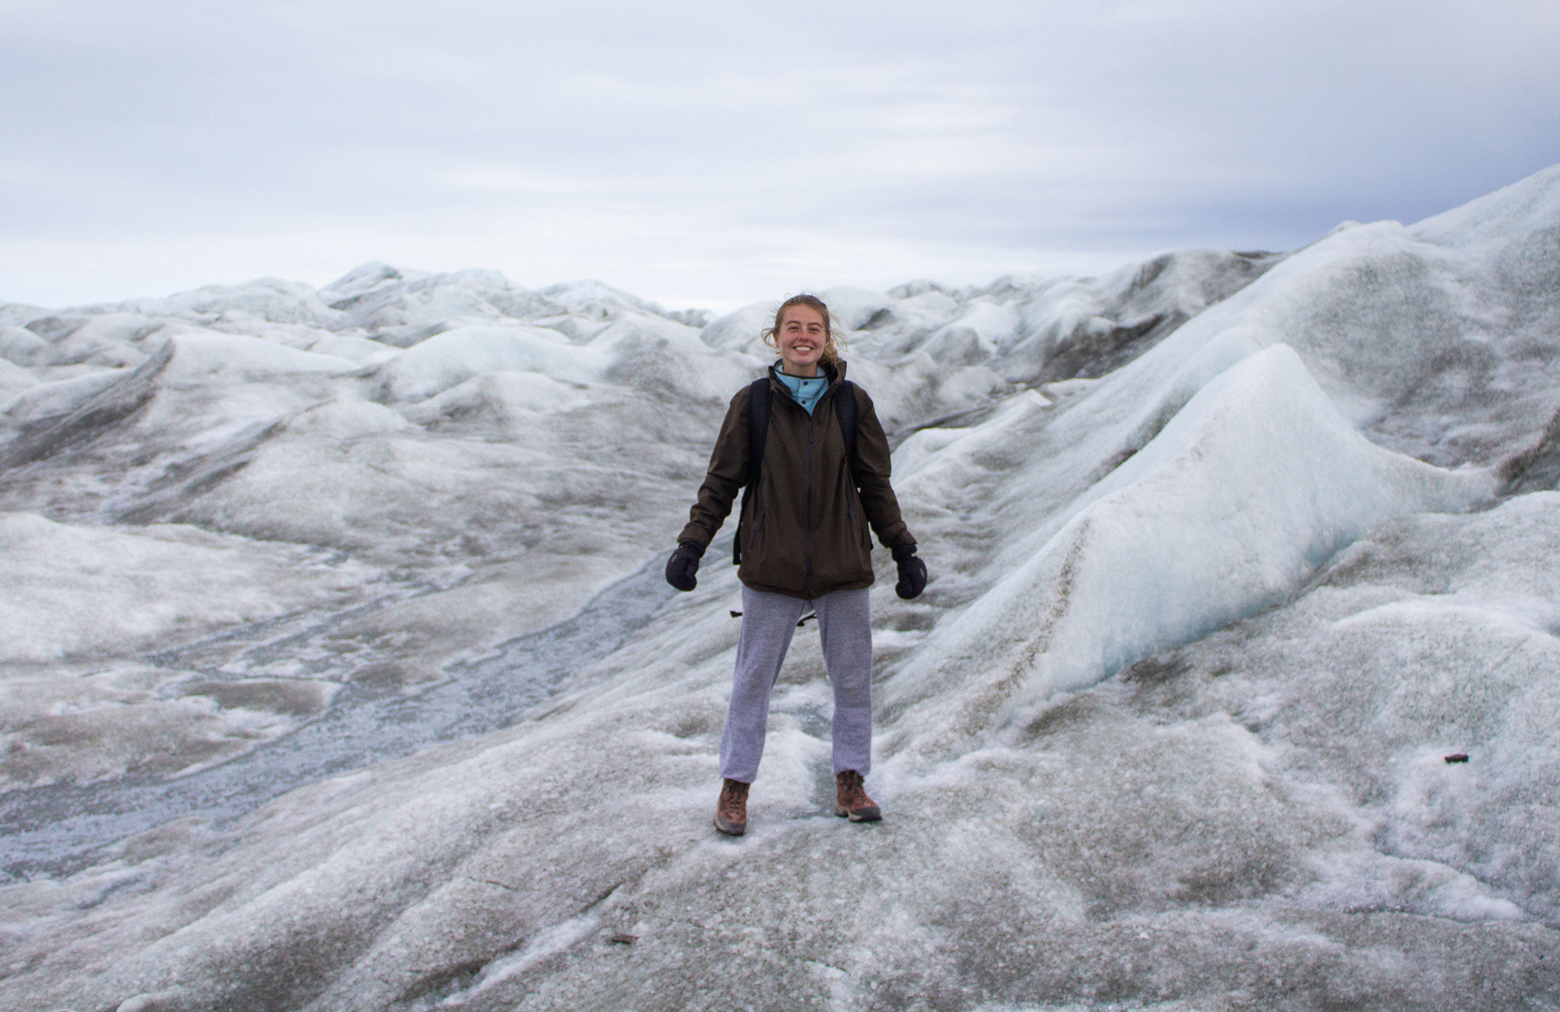 Abigail Meyer, a graduating computer science engineering student, is pictured atop Russell Glacier in the Greenland Ice Sheet. Photo by Marc Koerschner